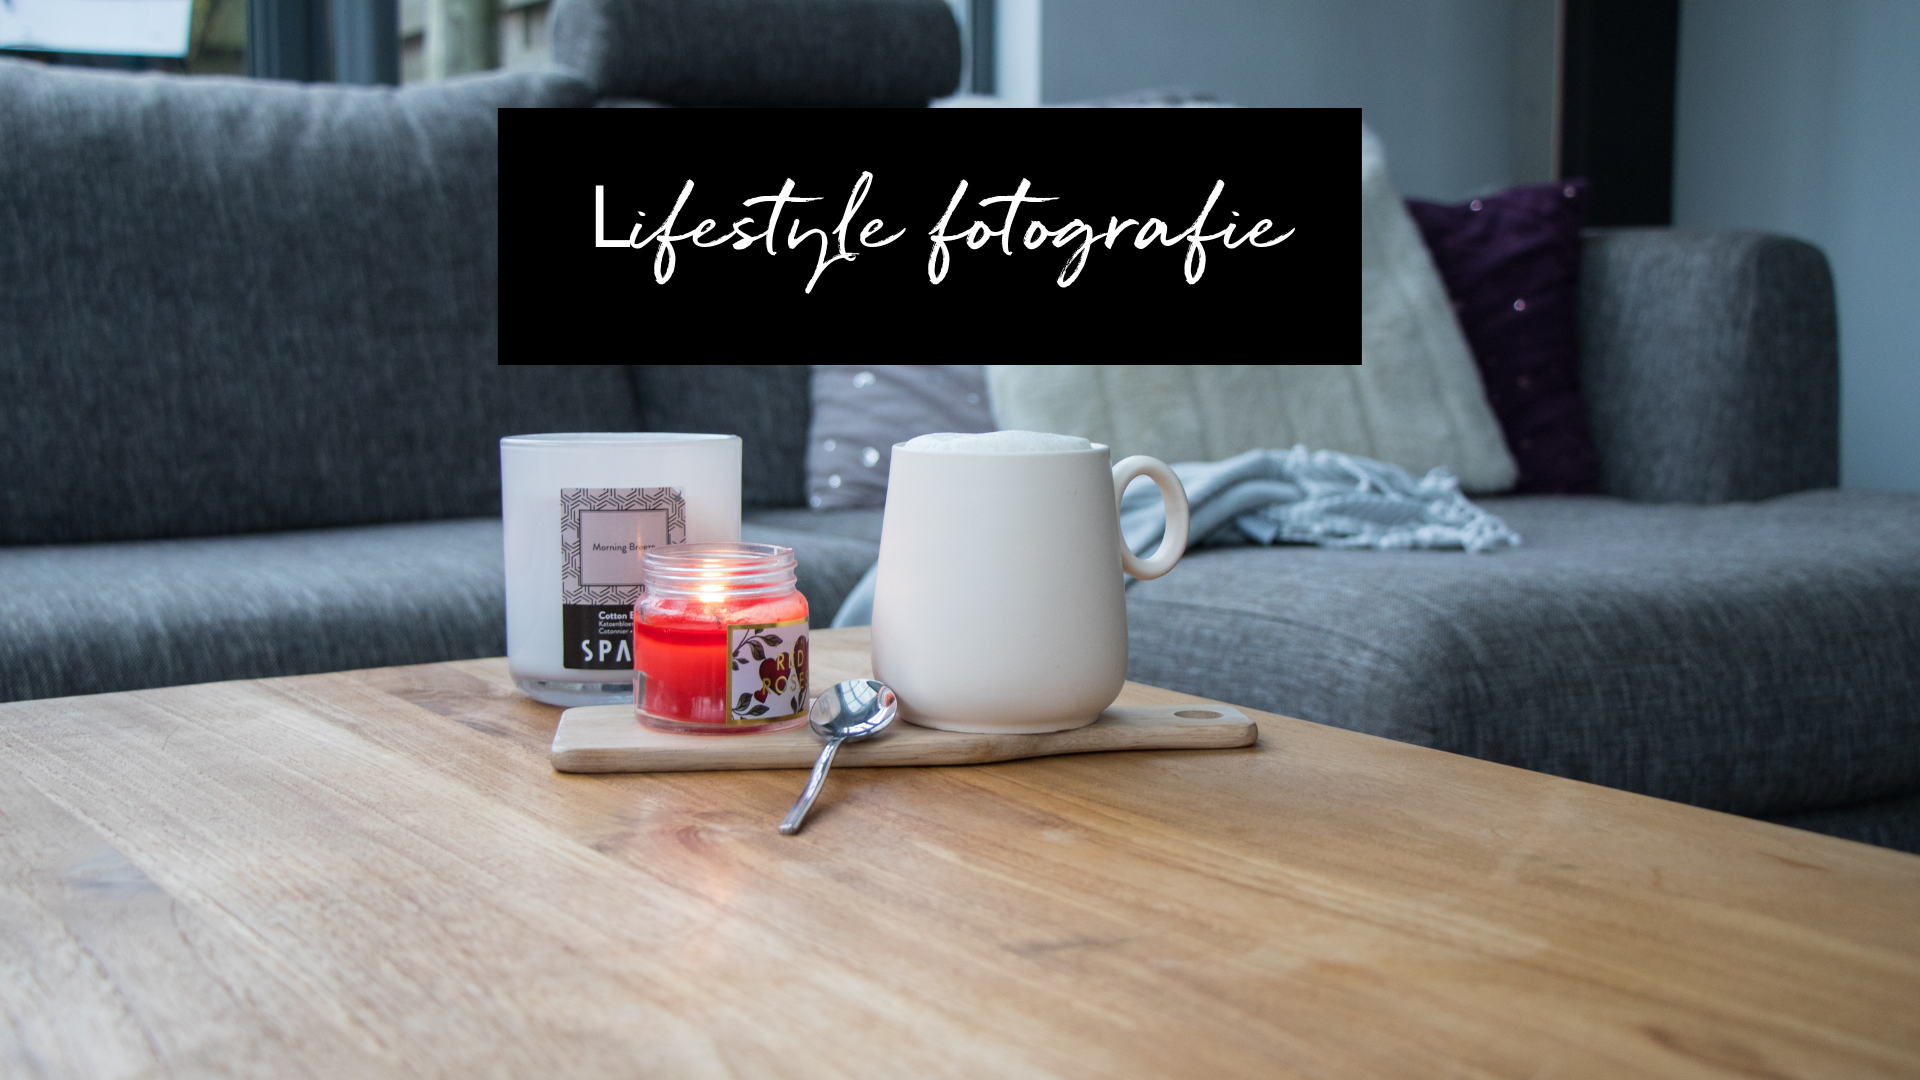 Instagram post idee_ lifestyle fotografie